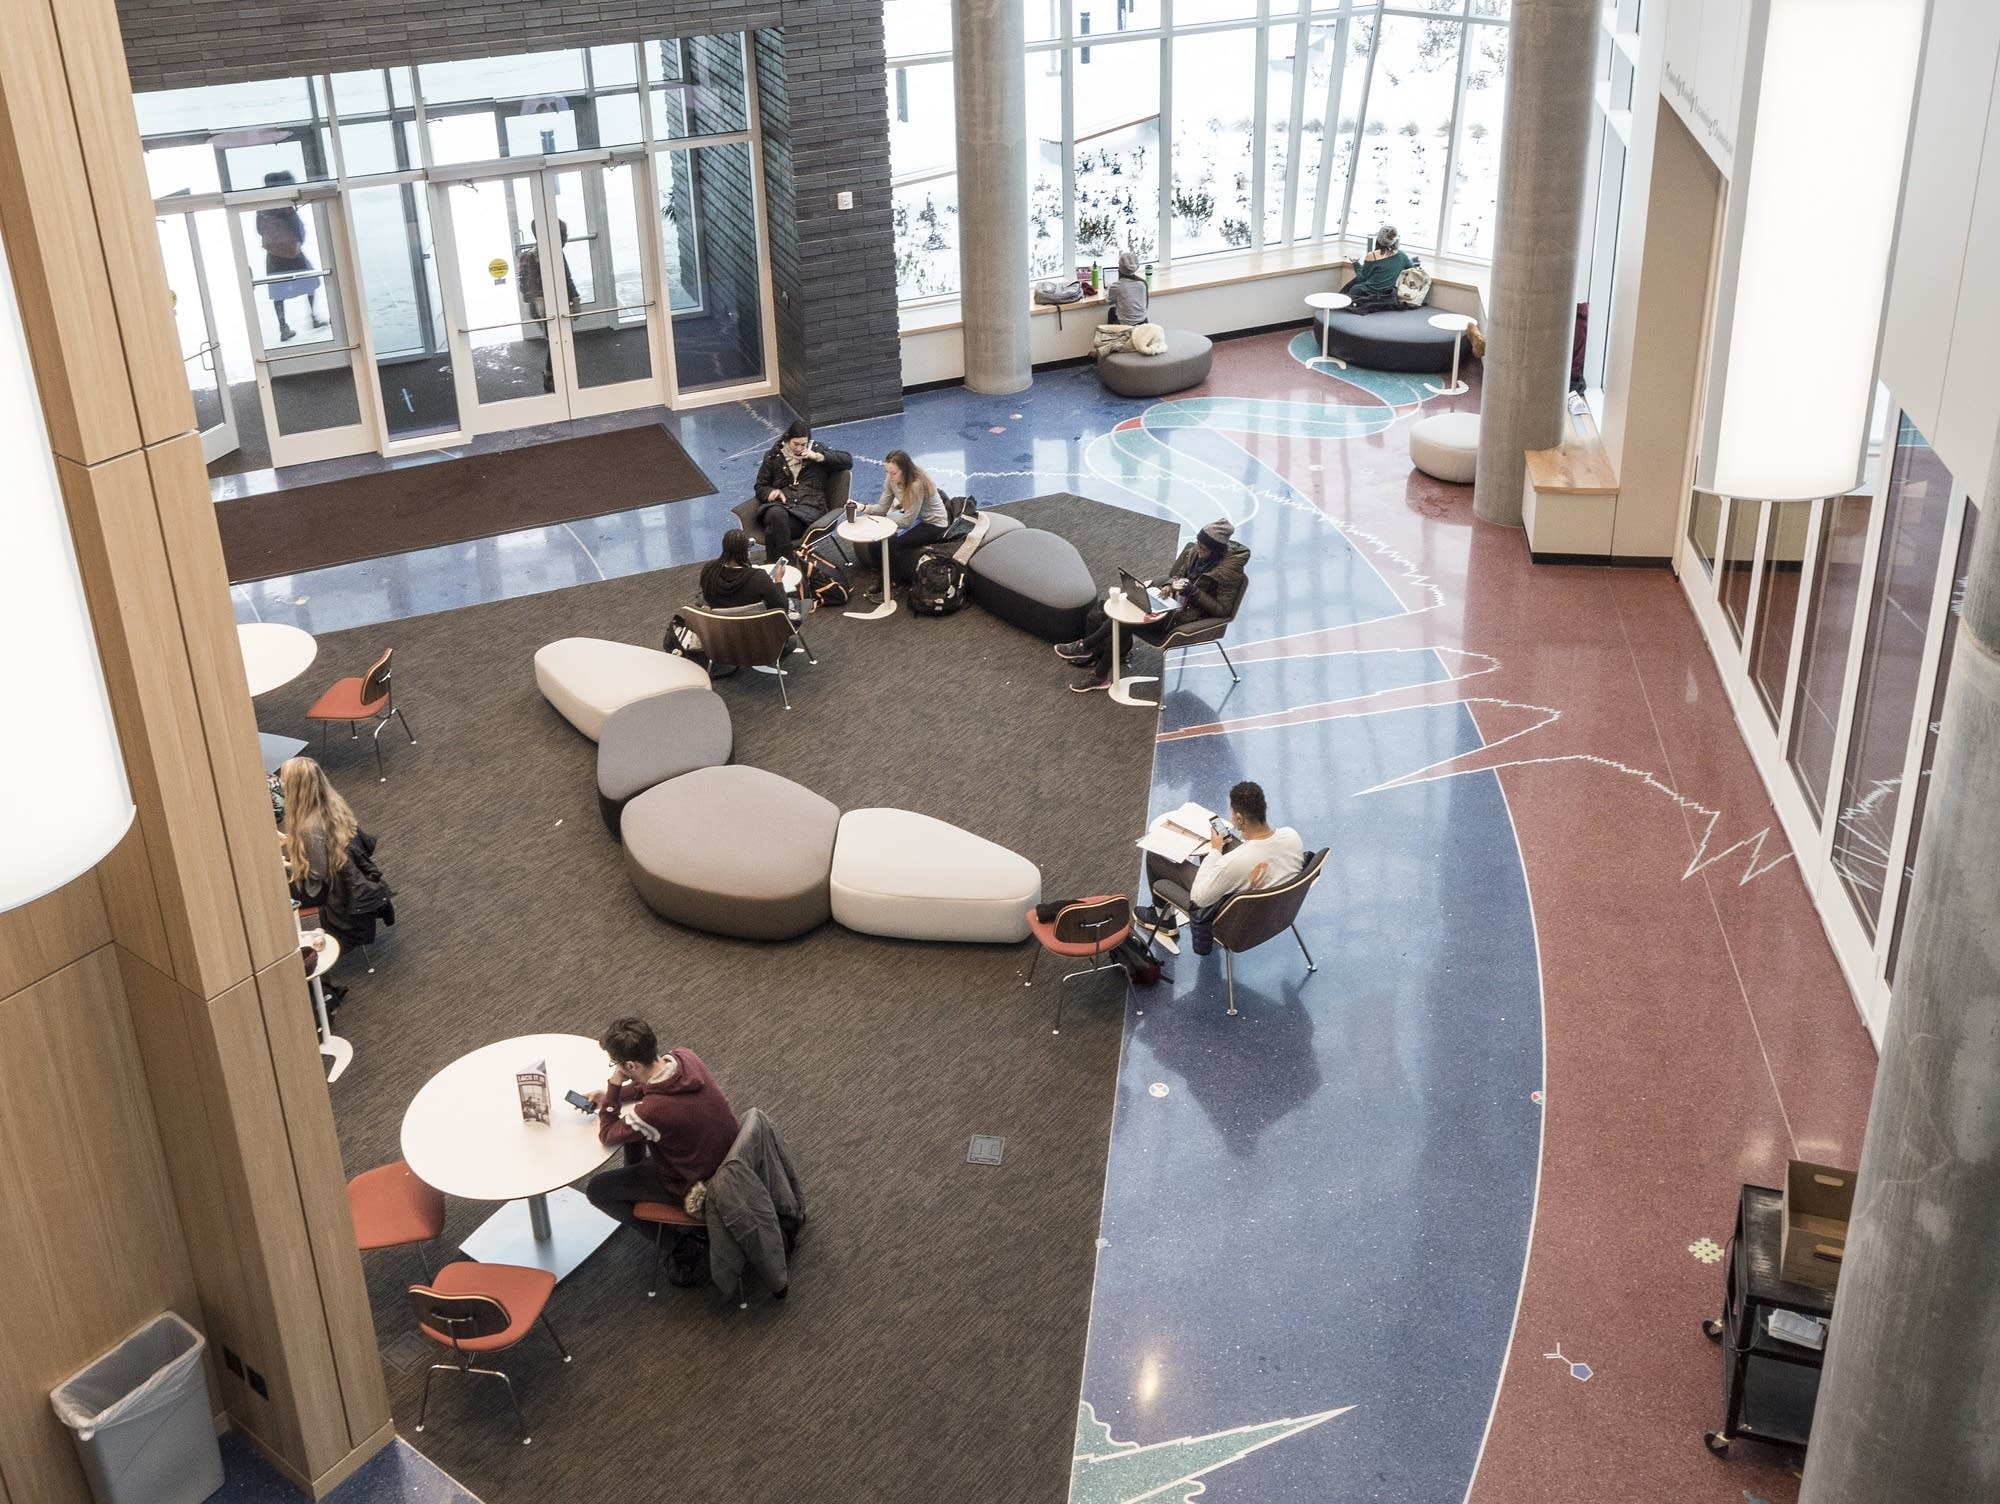 Stanton Sears and Andrea Myklebust designed the floors of Hagfors Center.